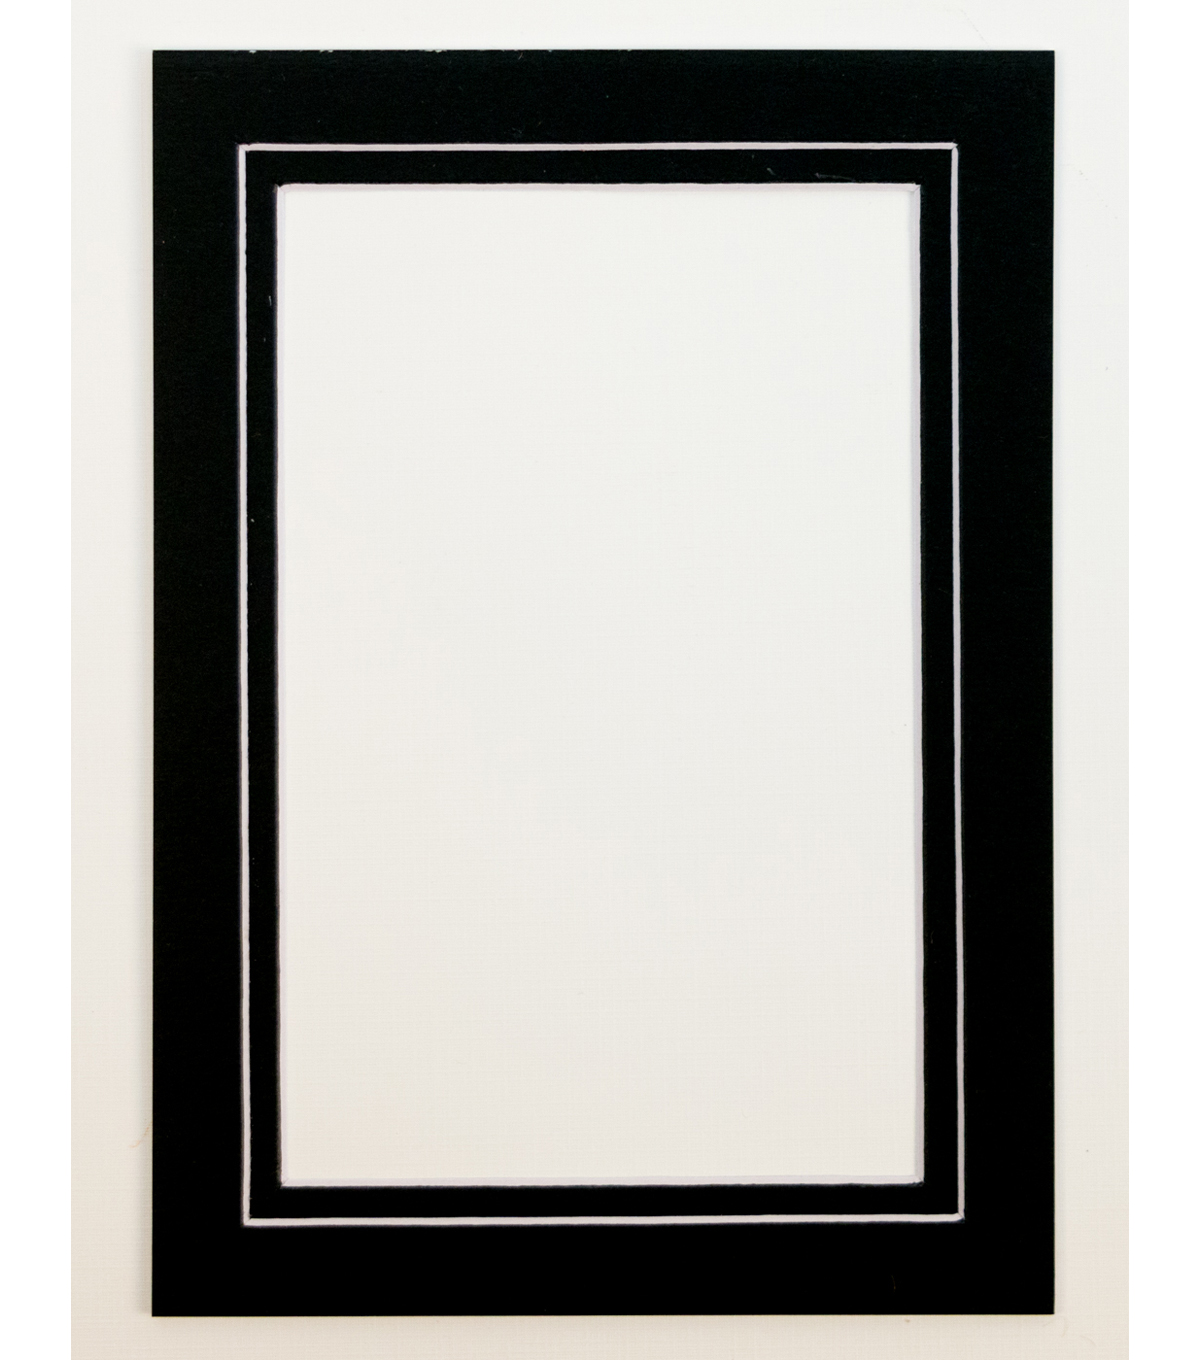 Framing Mats 5X7-Double Black